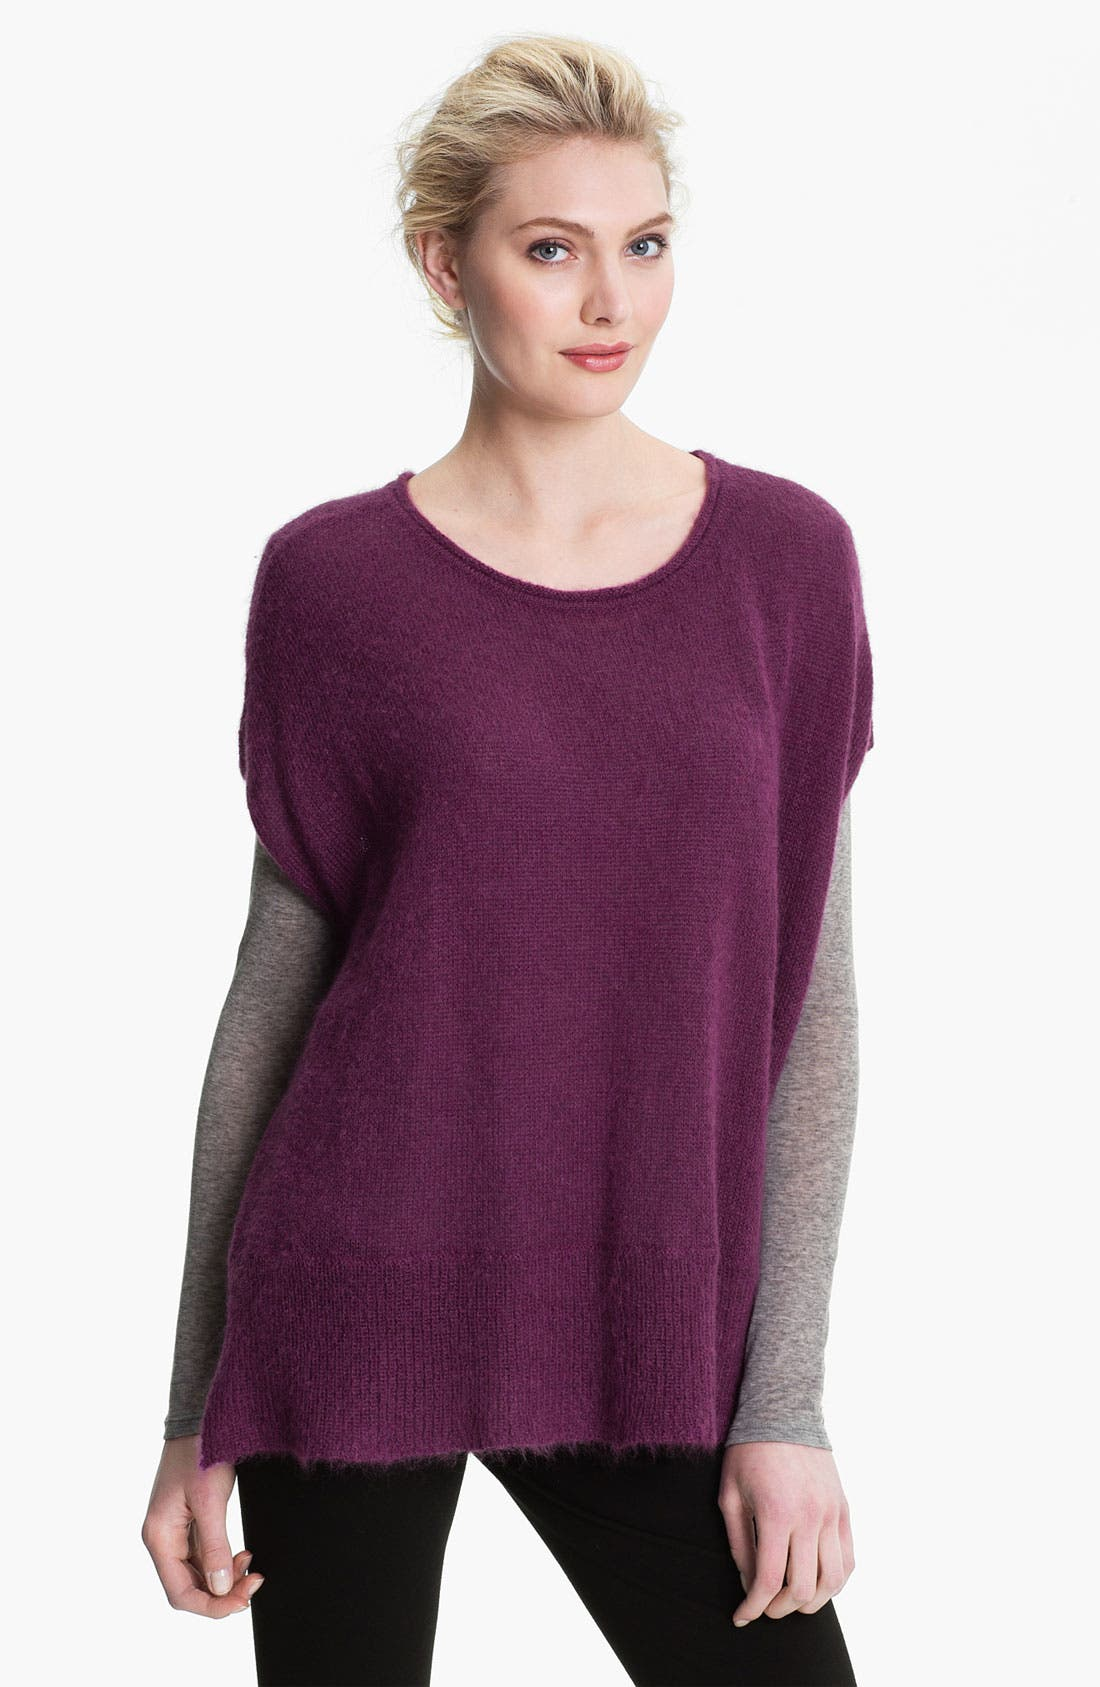 Alternate Image 1 Selected - Eileen Fisher Ballet Neck Boxy Sweater (Online Exclusive)